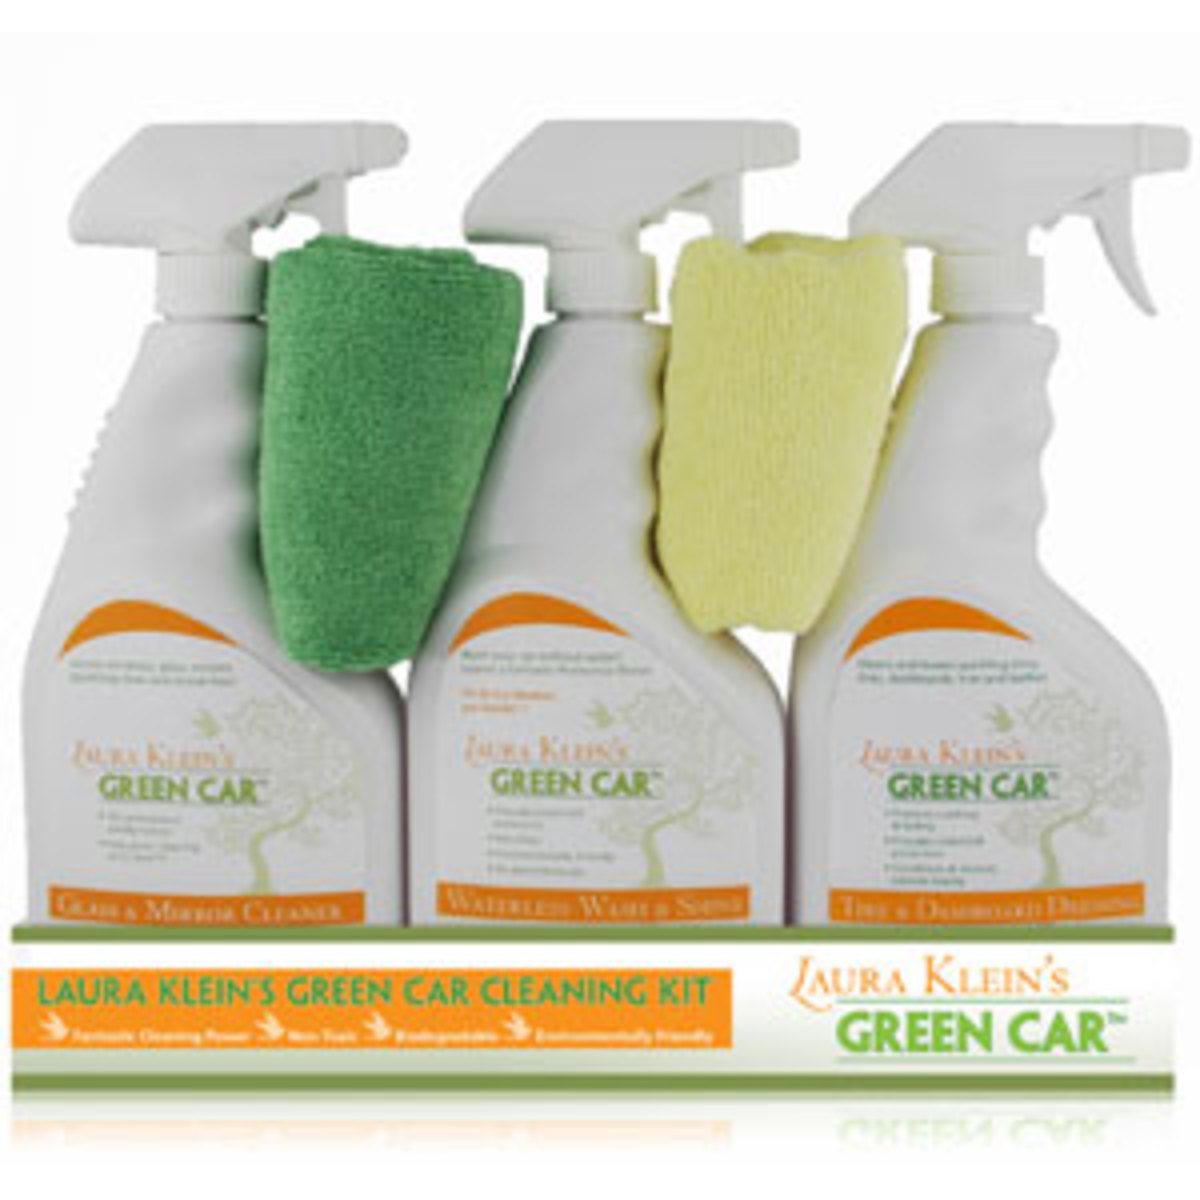 Laura Kleins Green Car Cleaning Kit